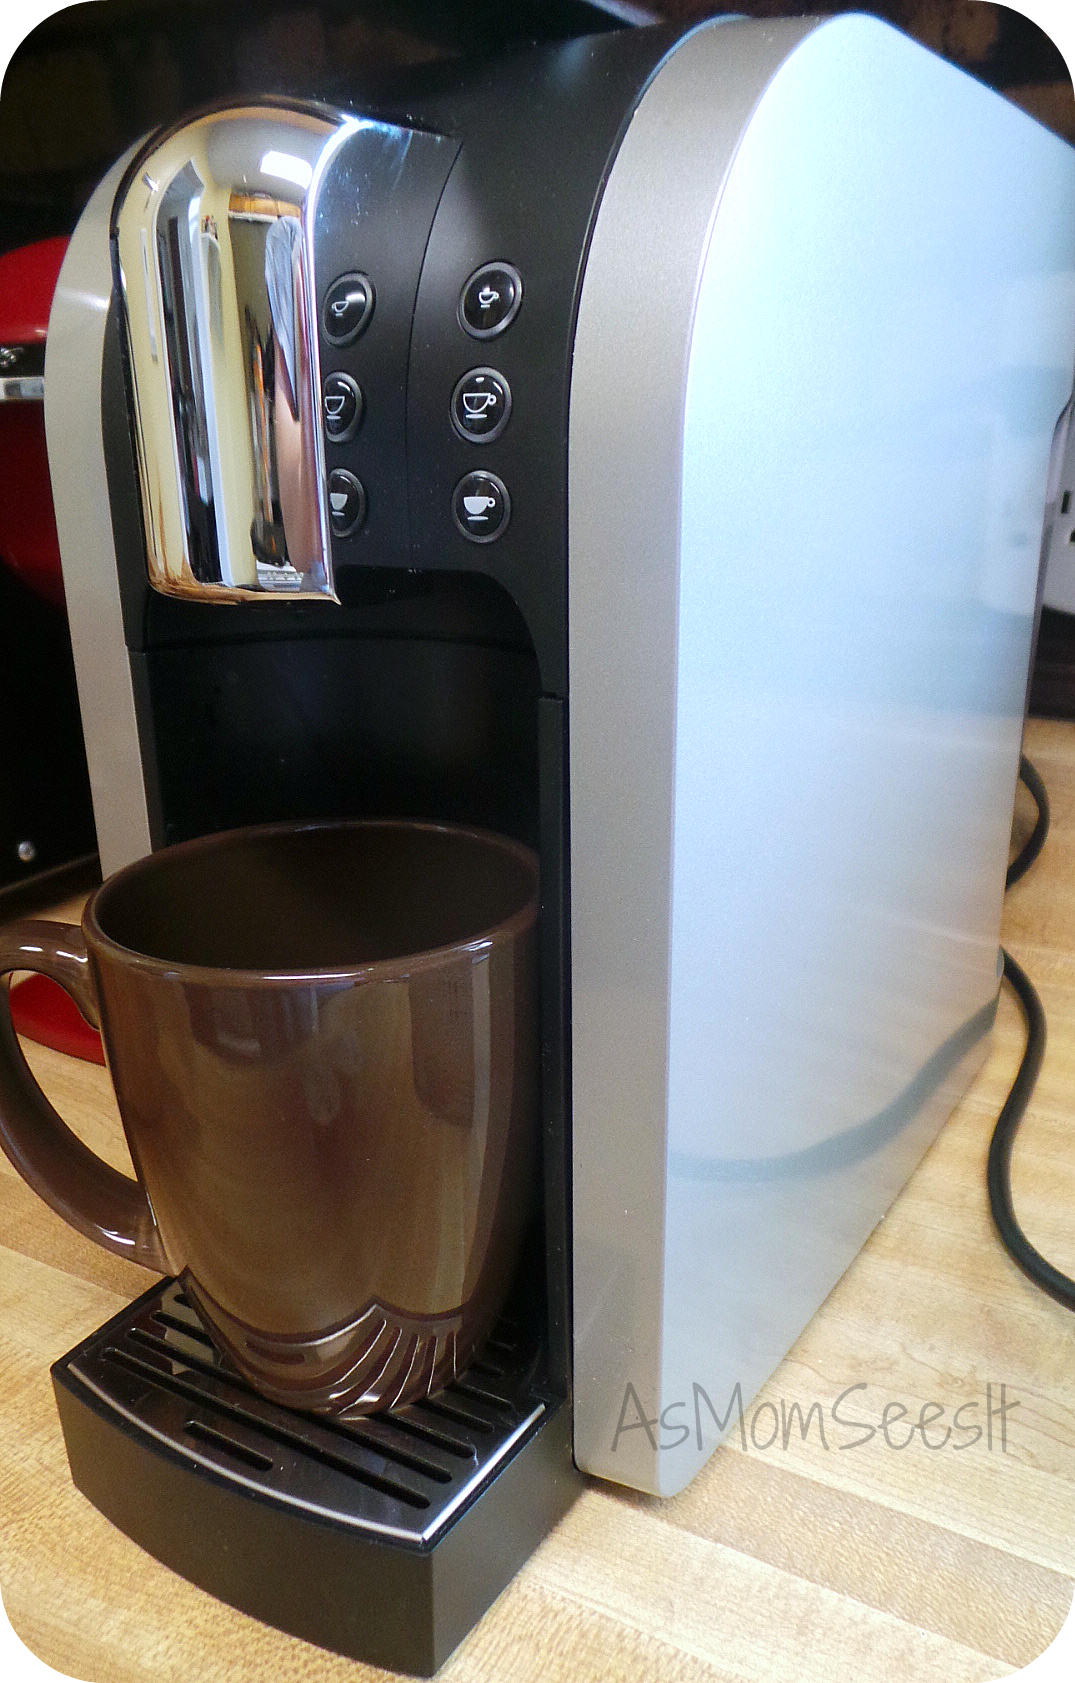 Brew your own Starbucks coffee, latte and espresso at home